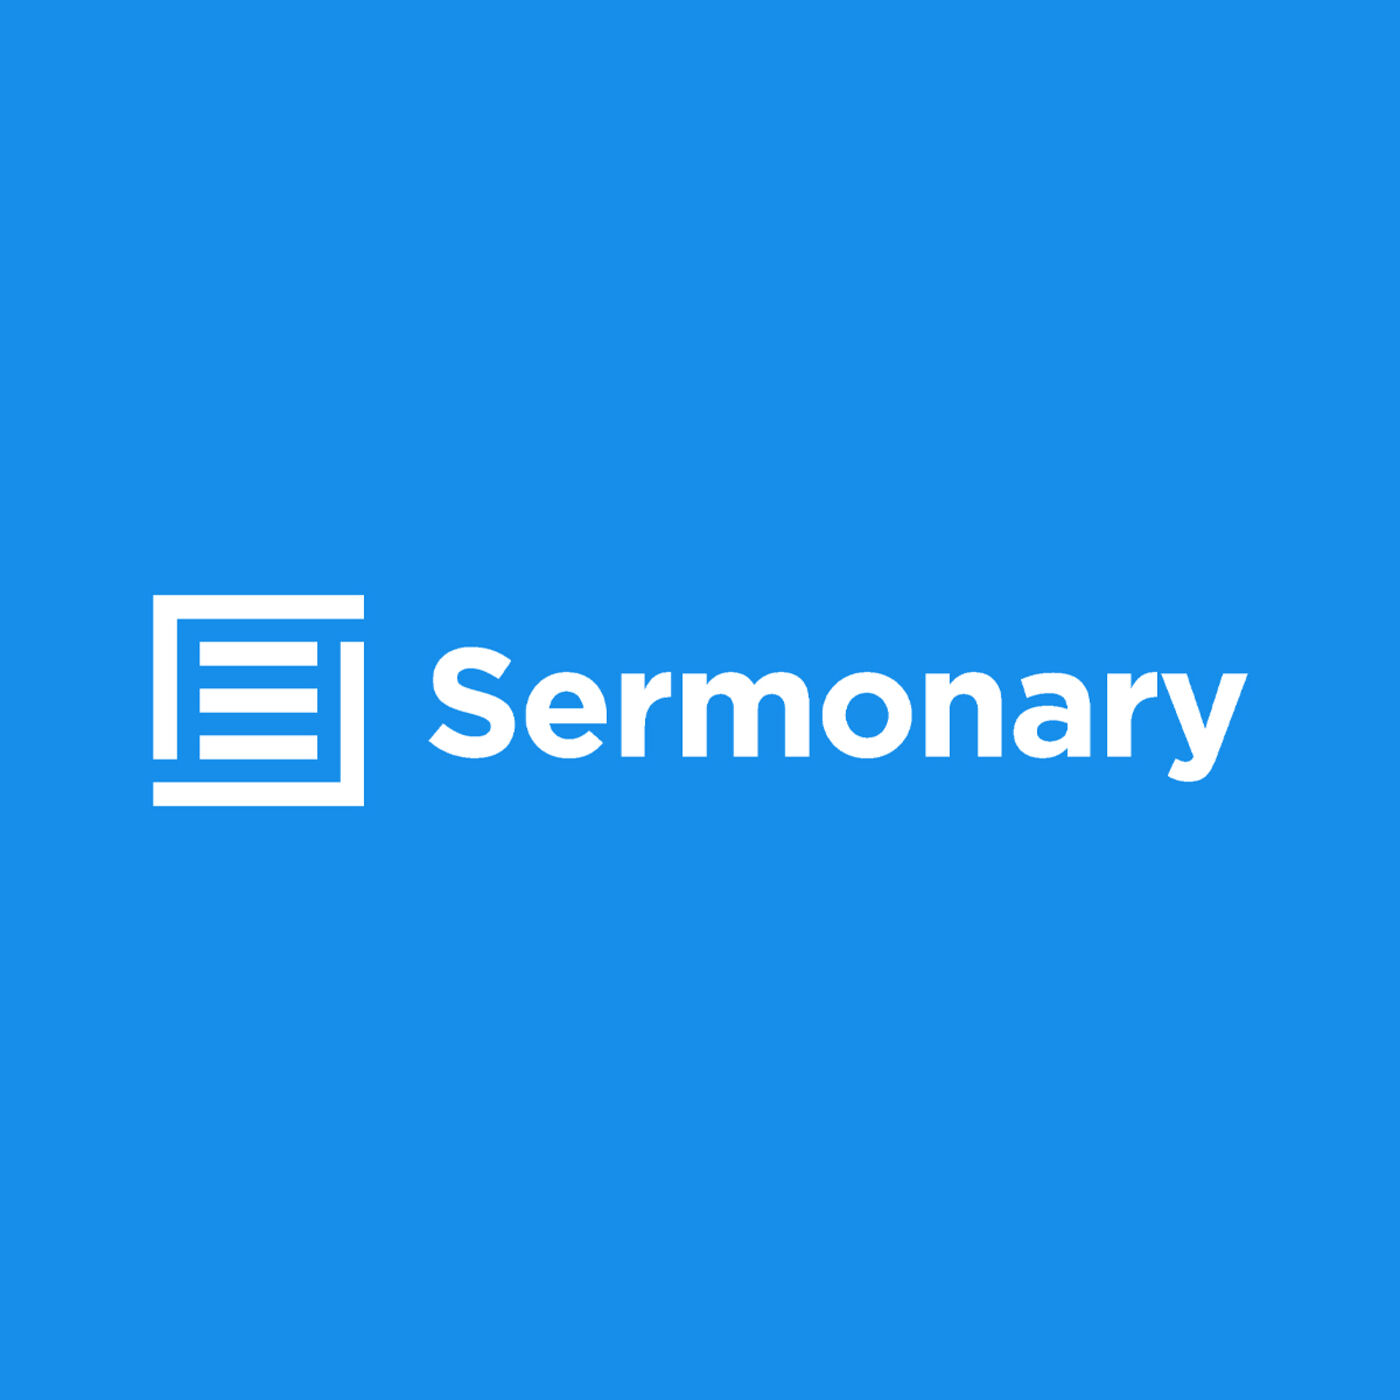 You Need To Know This Before You Plant A Church (7 Things) - Sermonary Podcast with John Stange